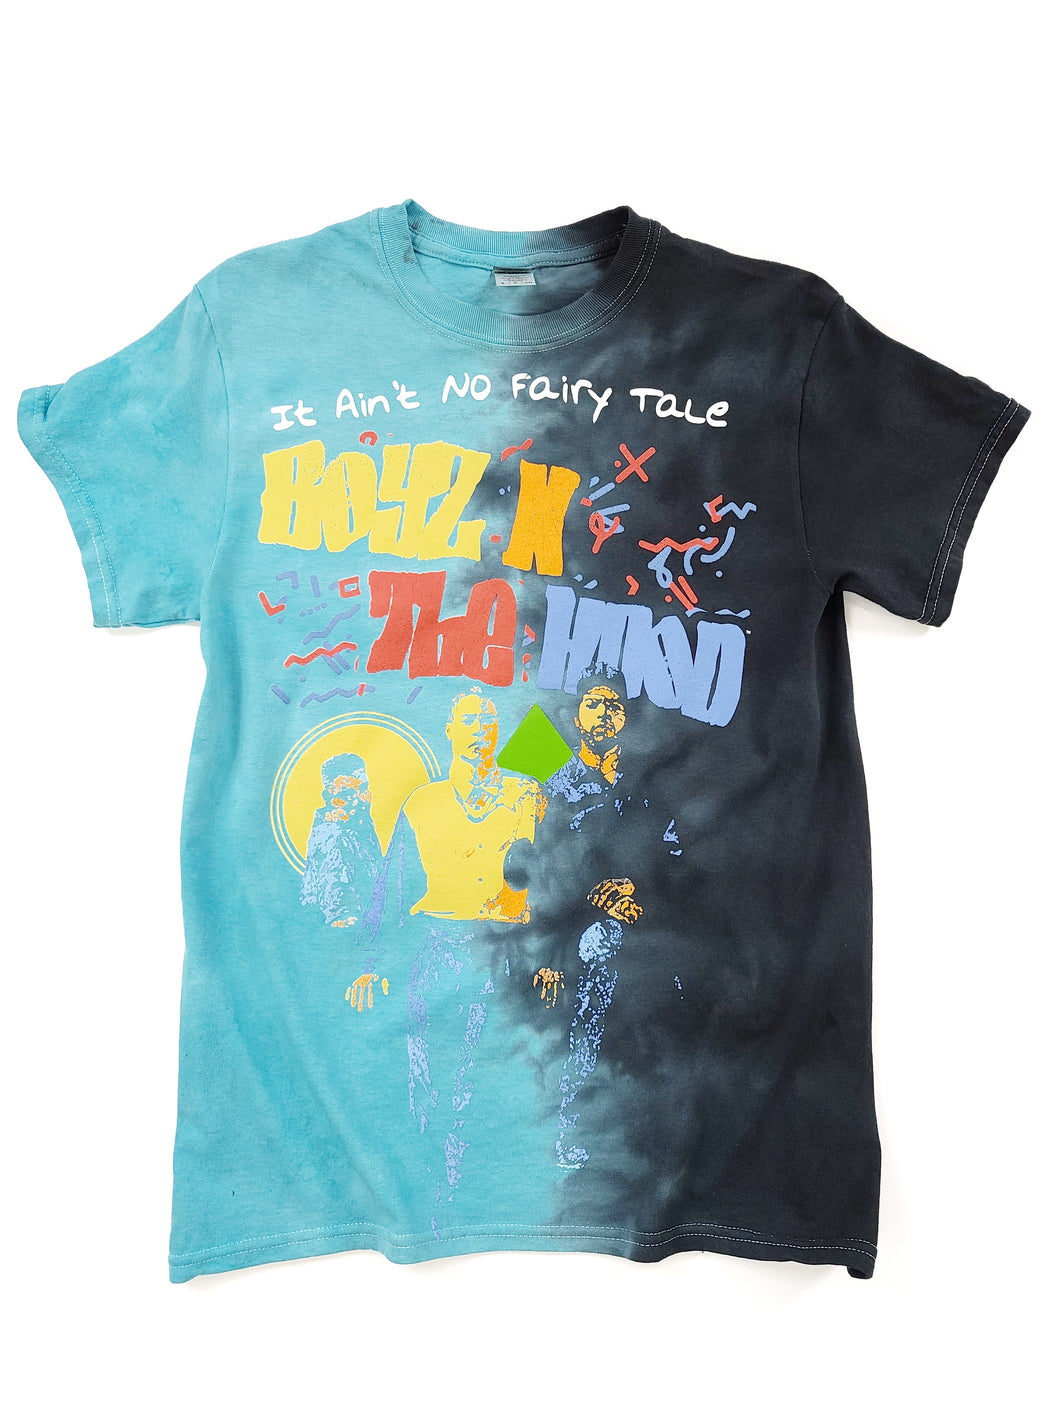 blue and black tie dye graphic short sleeve Boys in the Hood movie tee